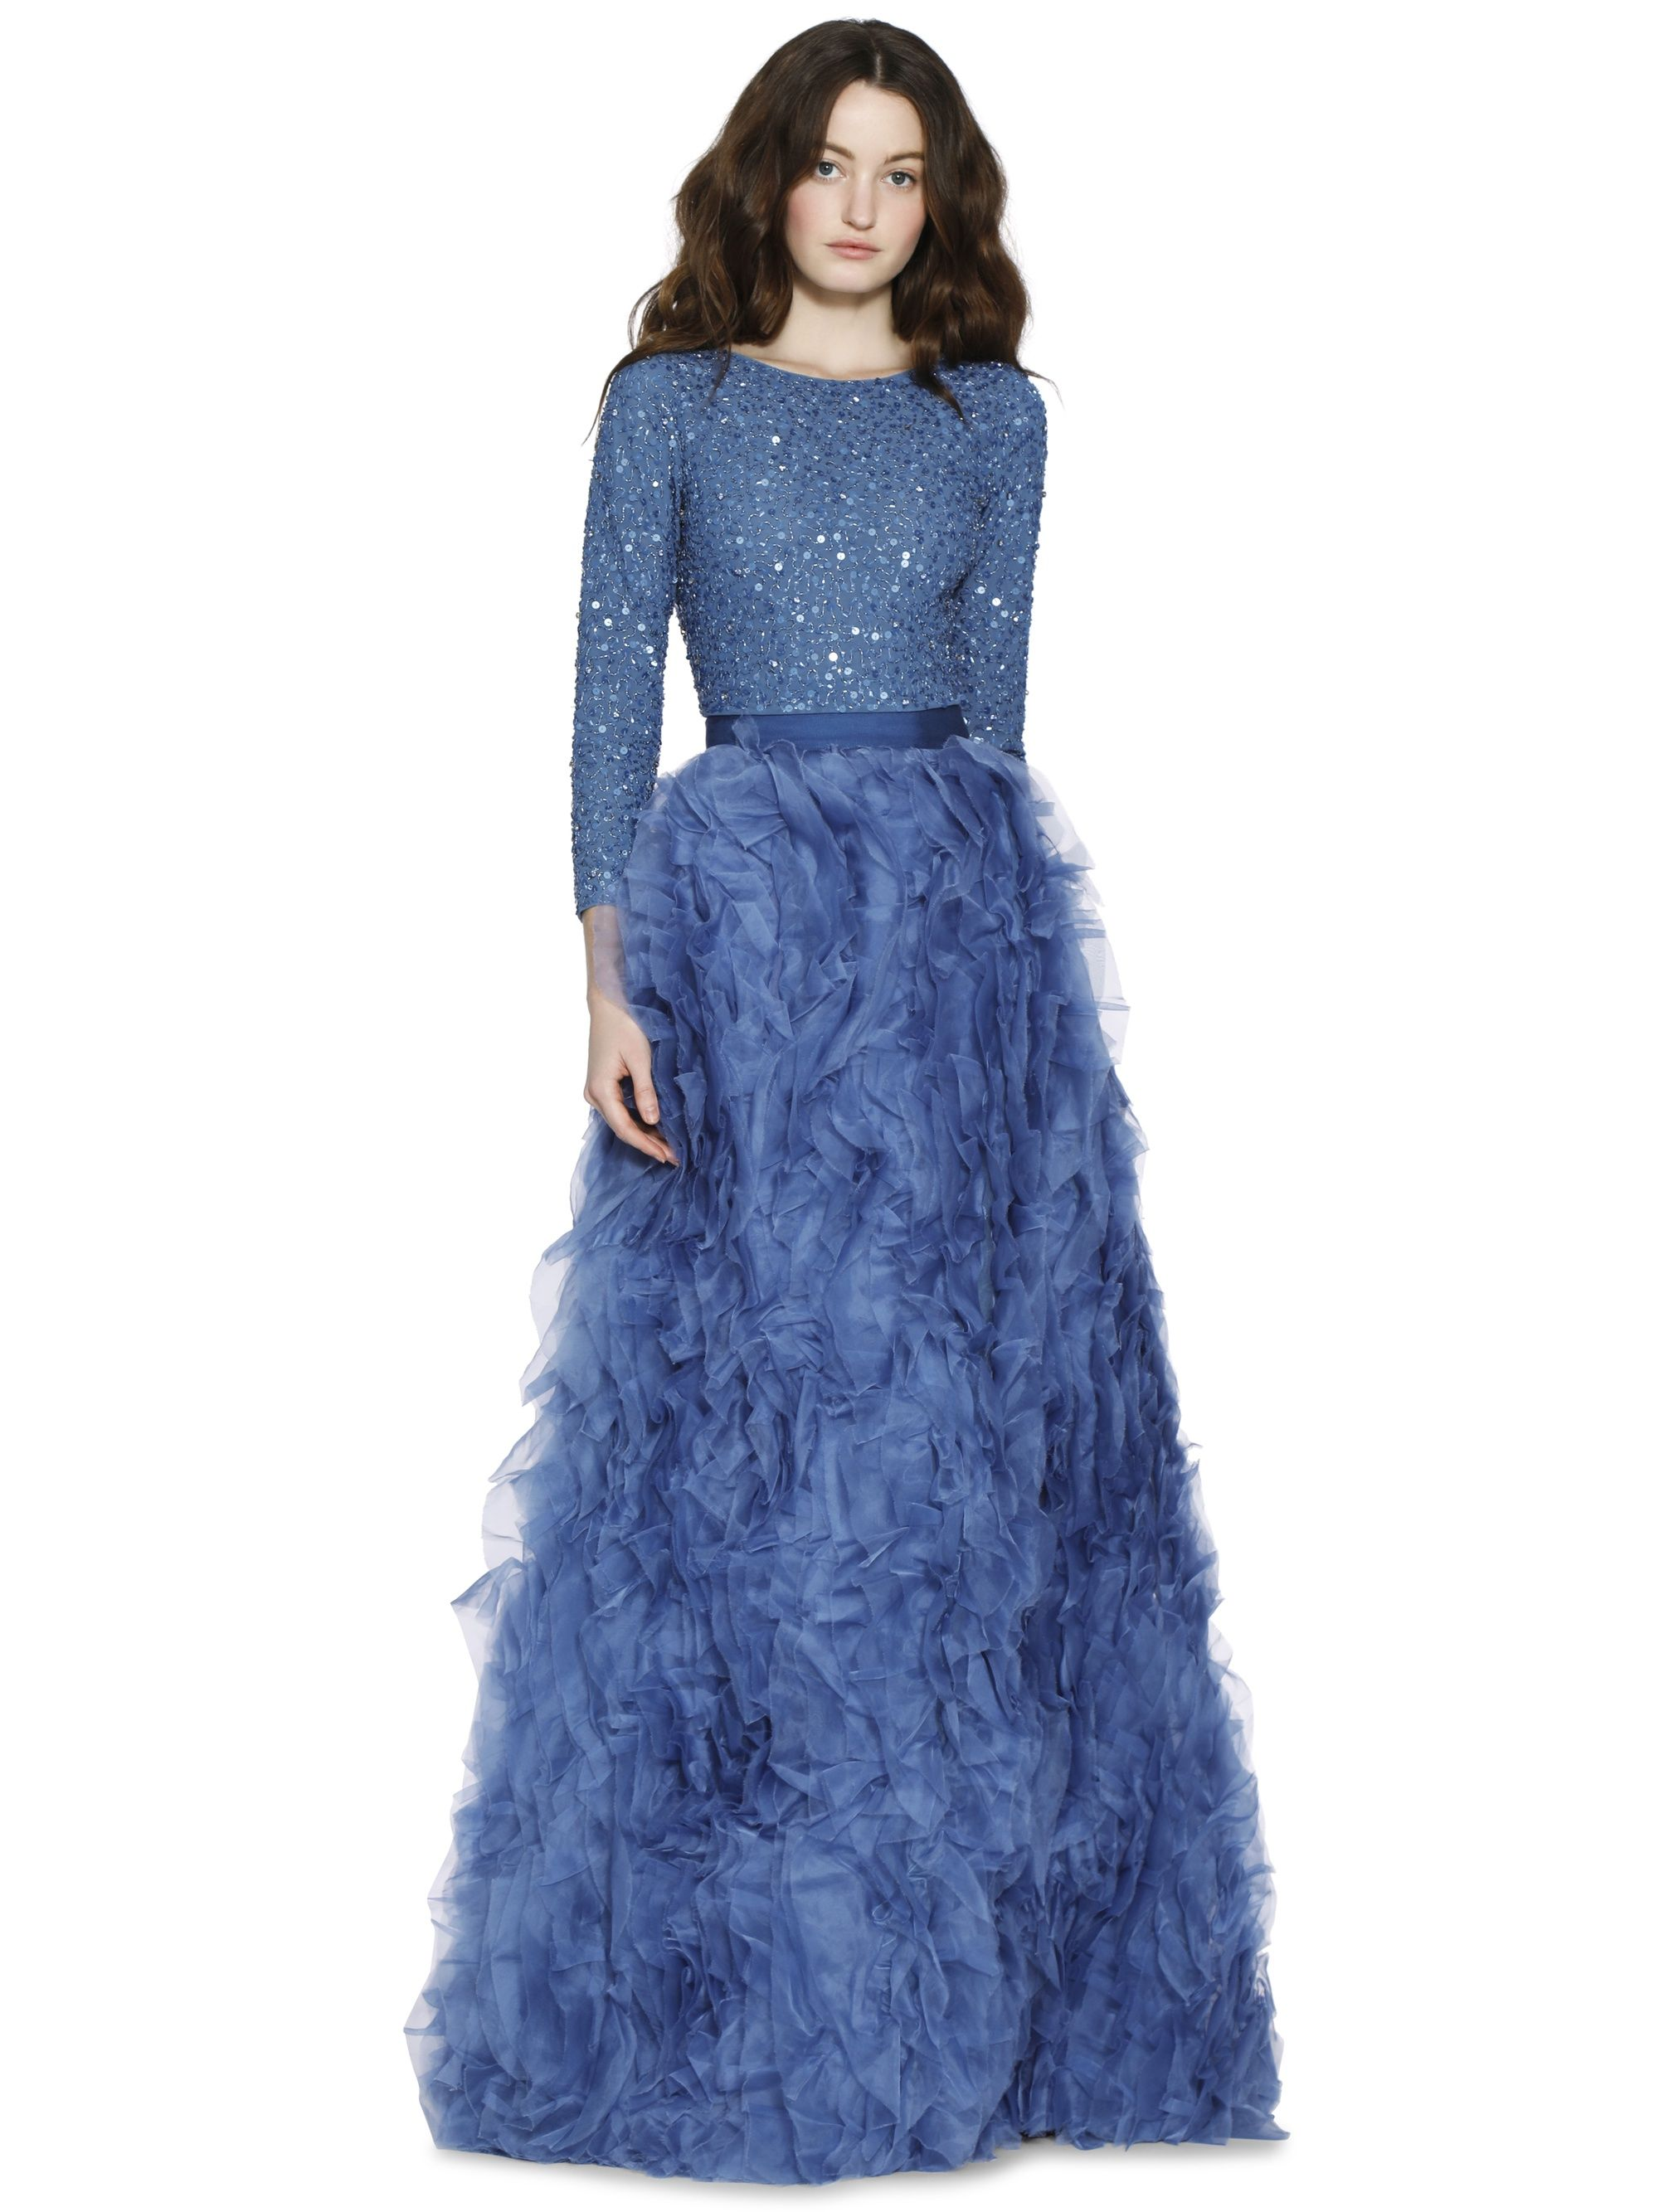 POSEY RUFFLE BALL GOWN SKIRT by Alice + Olivia | Stuff to Buy ...